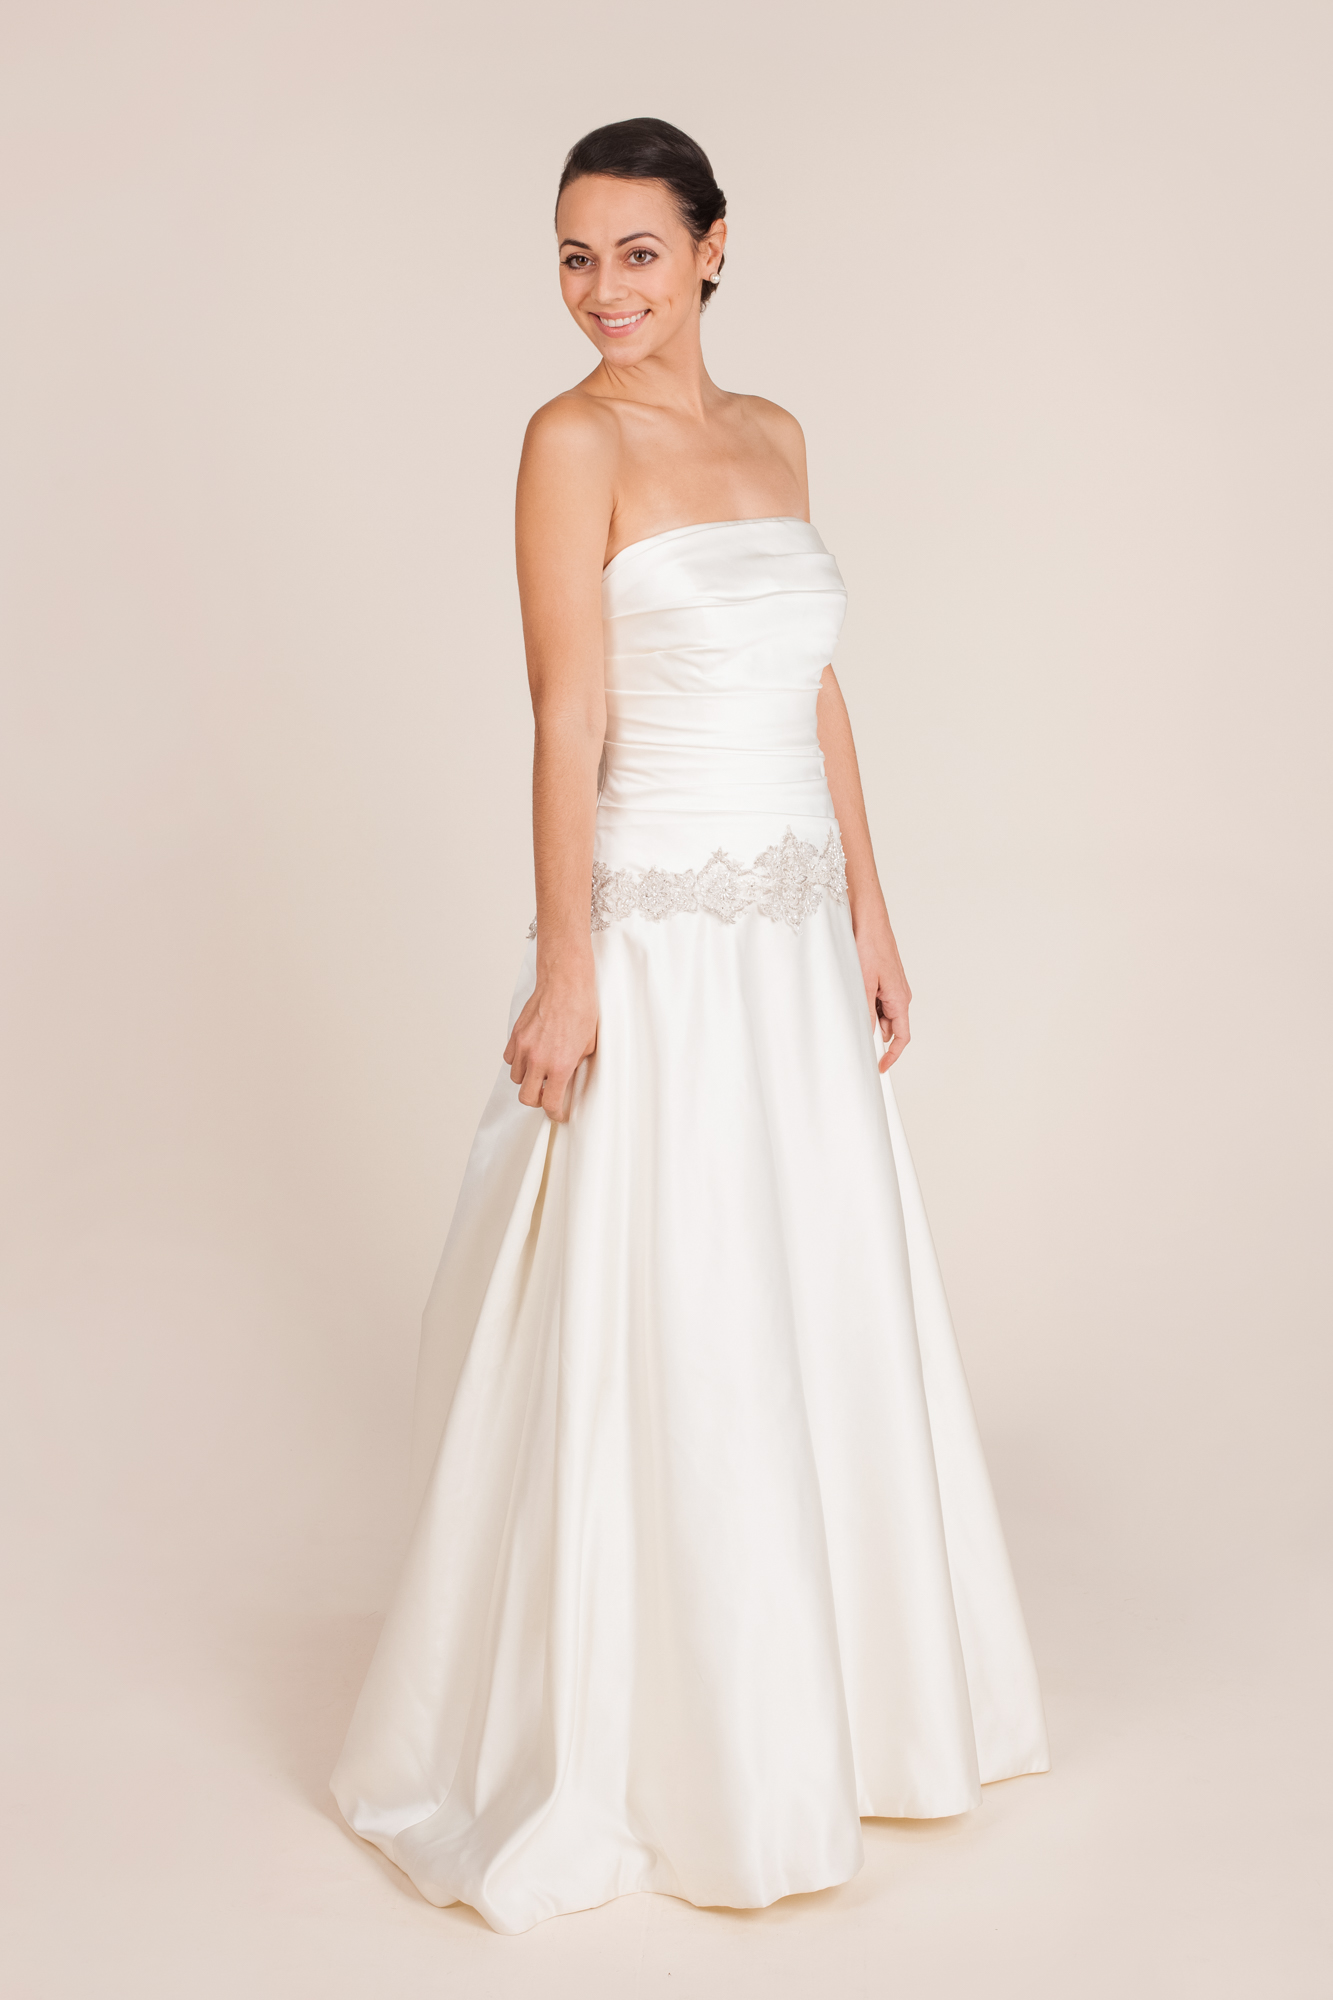 Oleg cassini - CT314 size 10 - $475 - (21% OFF)